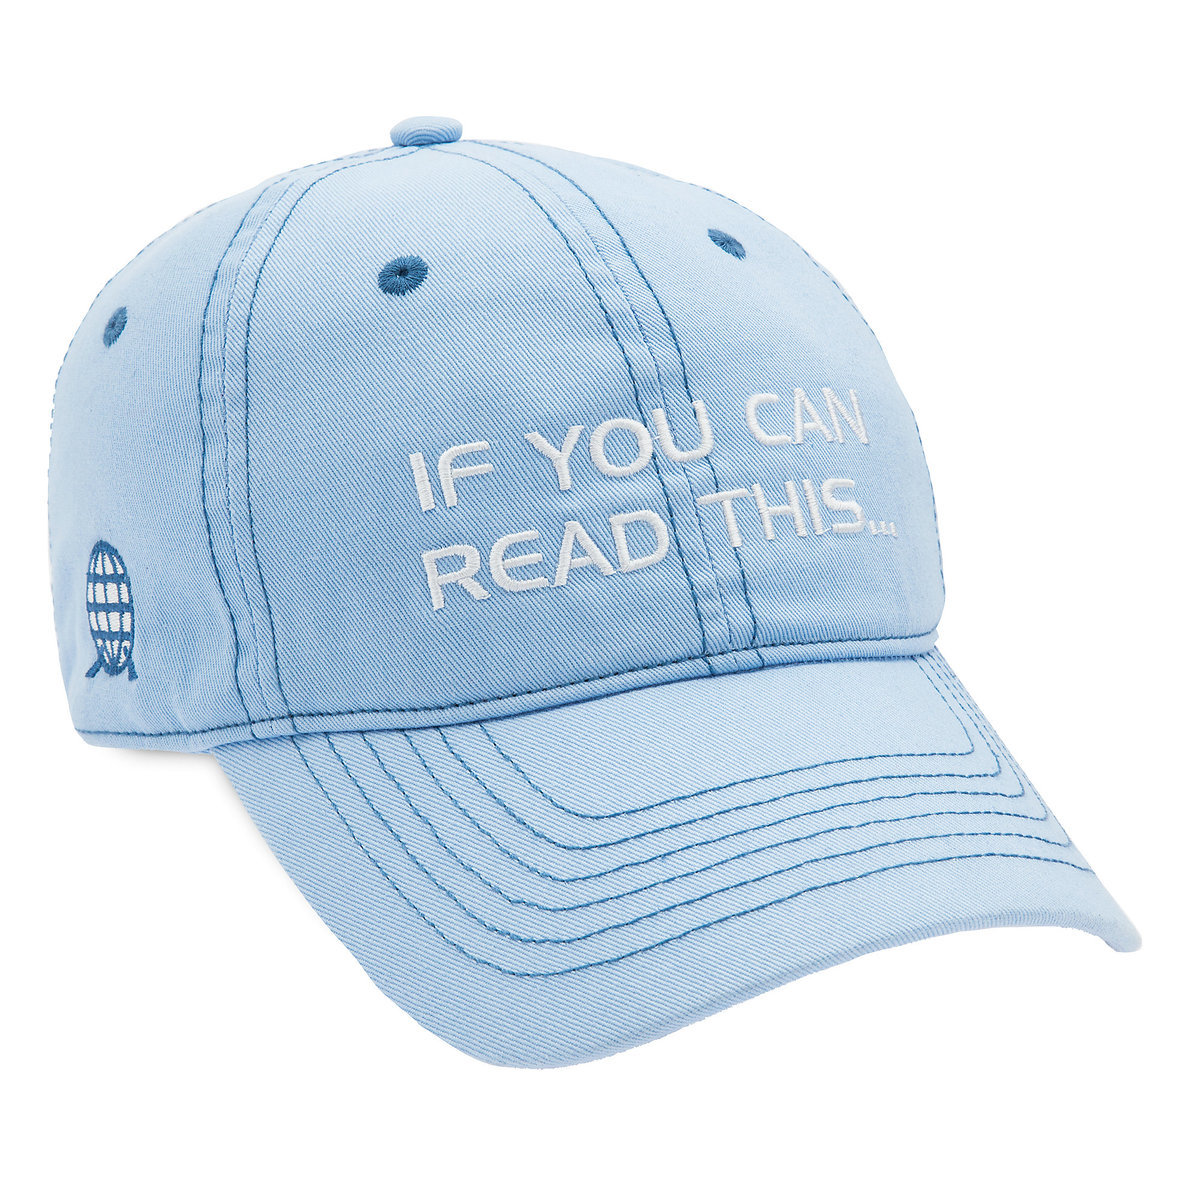 Disney Baseball Cap - Thank the Phoenicians - Spaceship Earth Quote